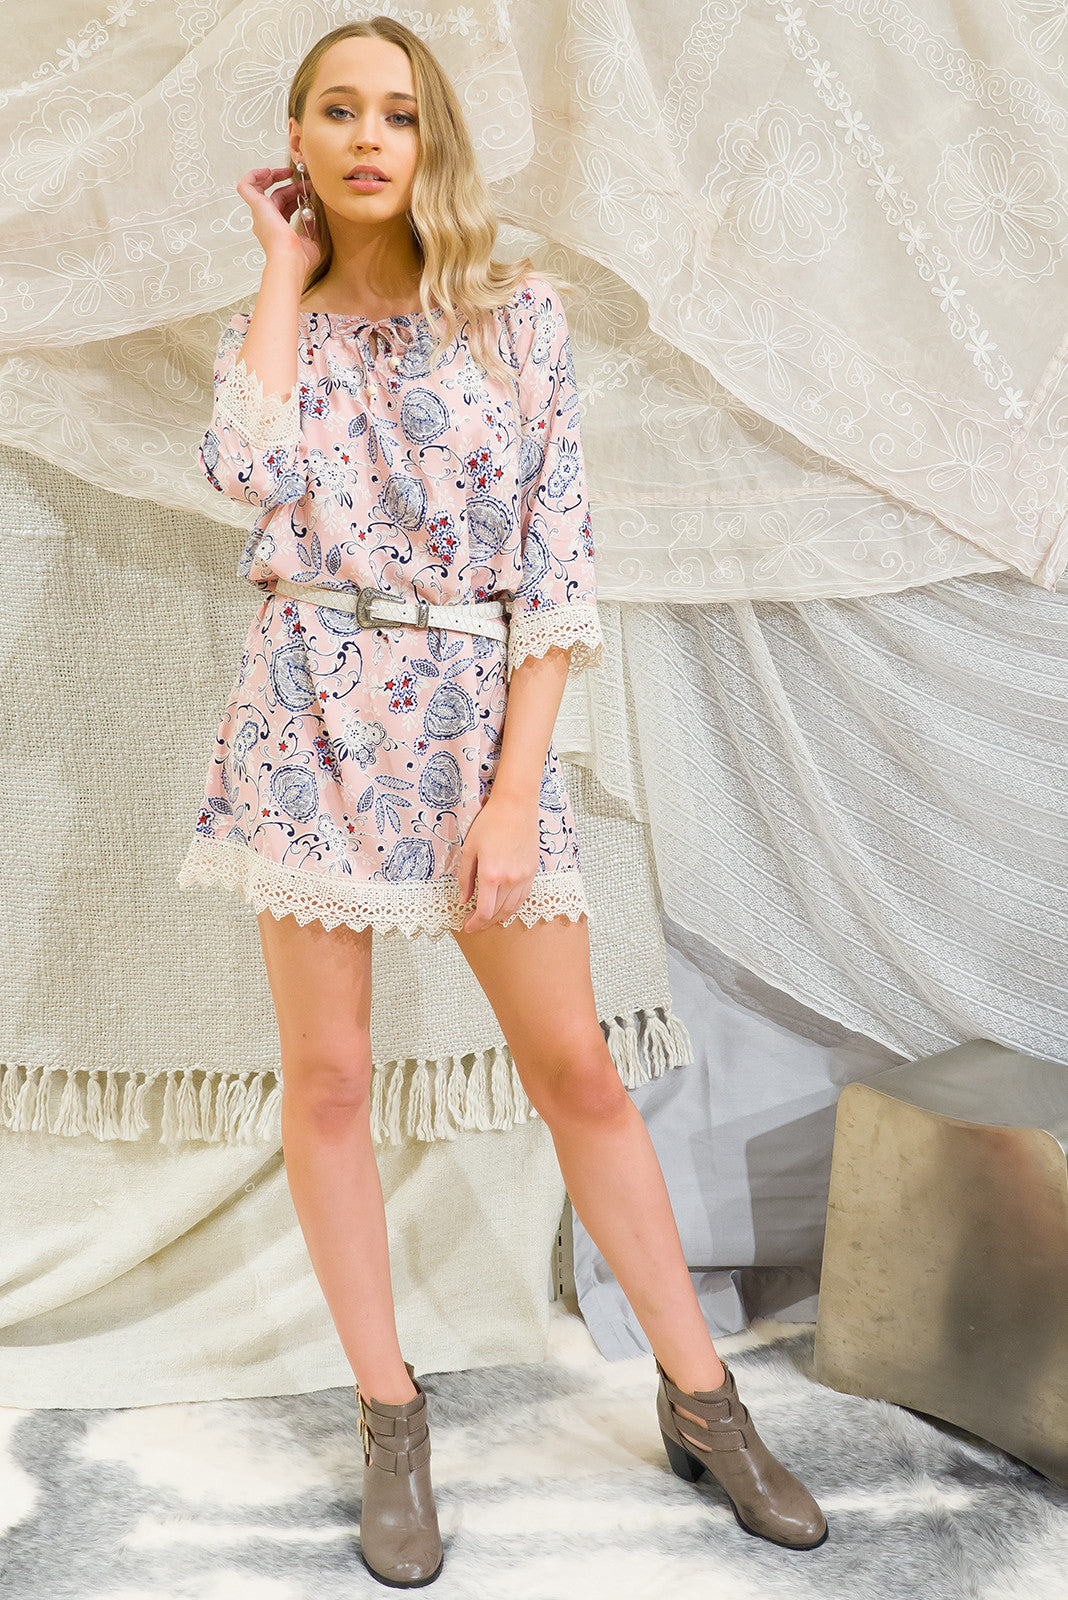 Angie Dress Taffy in Petal pink floral print